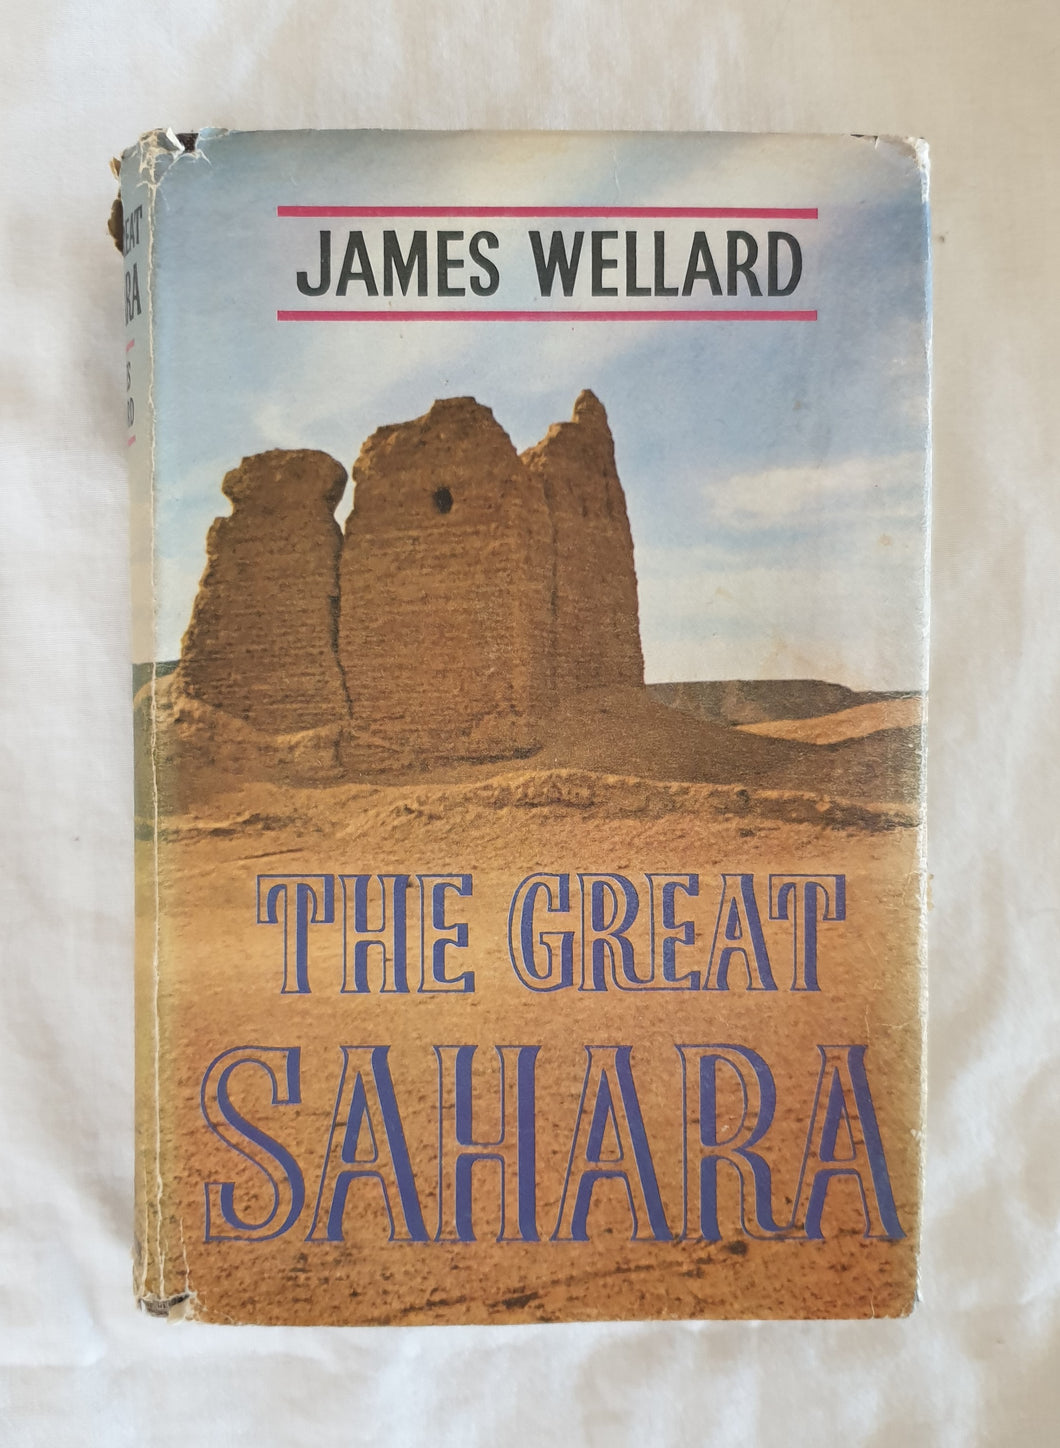 The Great Sahara by James Wellard